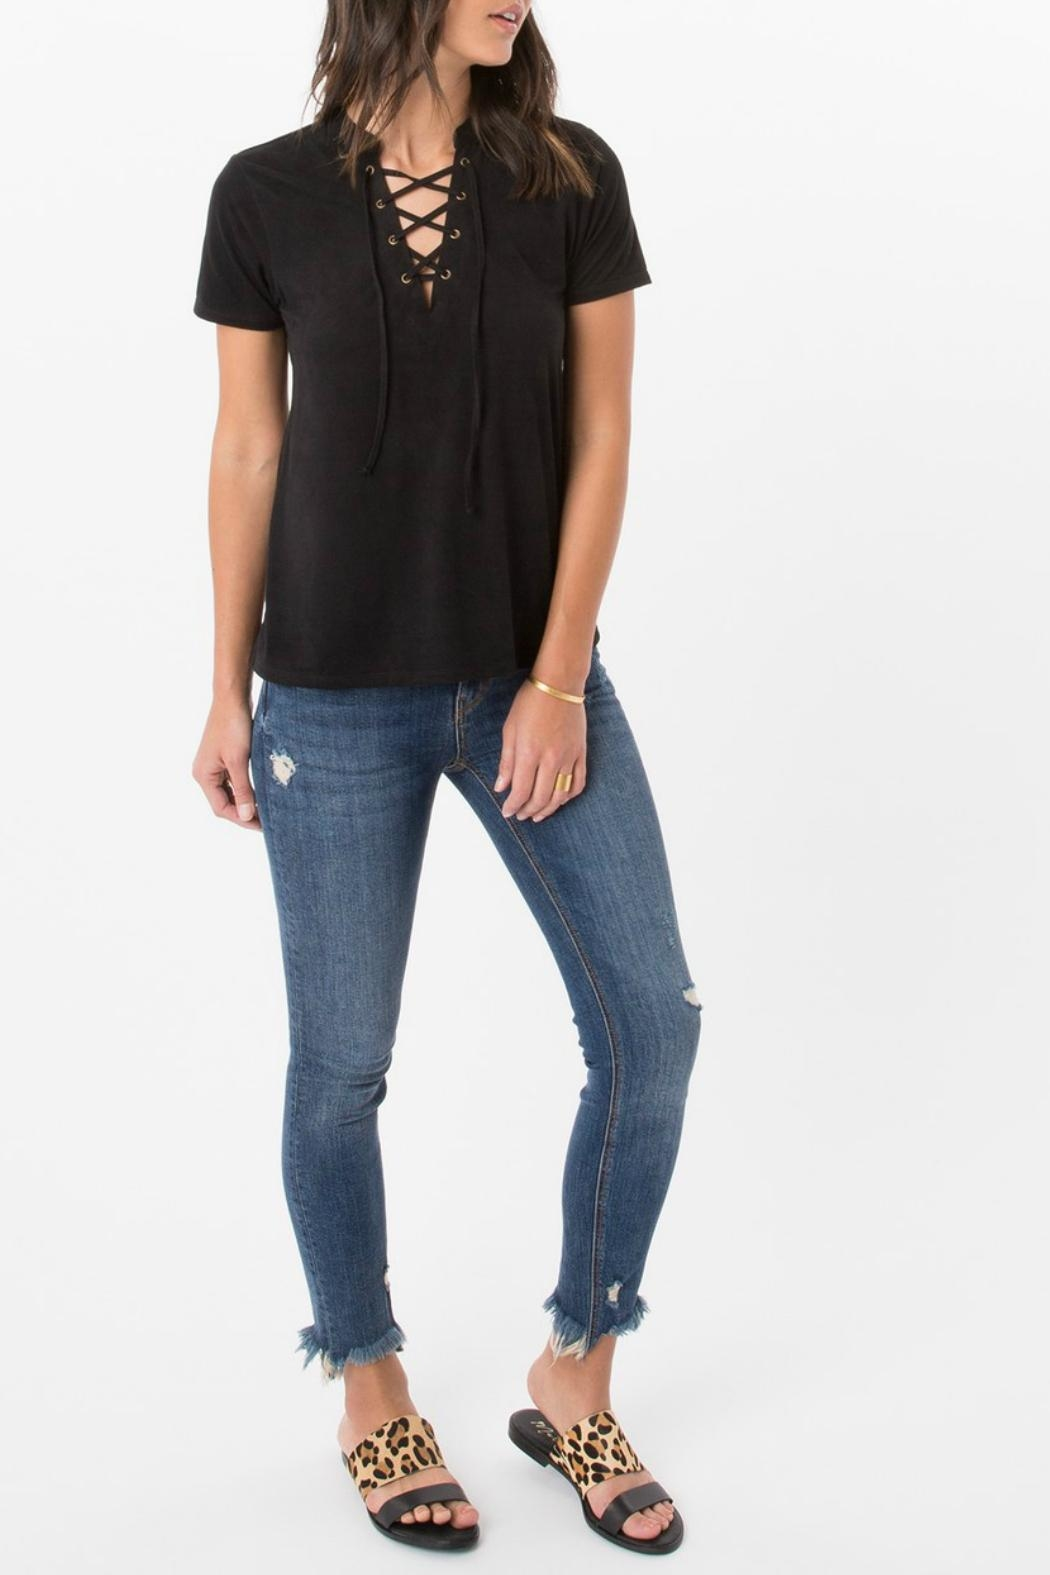 z supply Suede Lace Up Top - Back Cropped Image